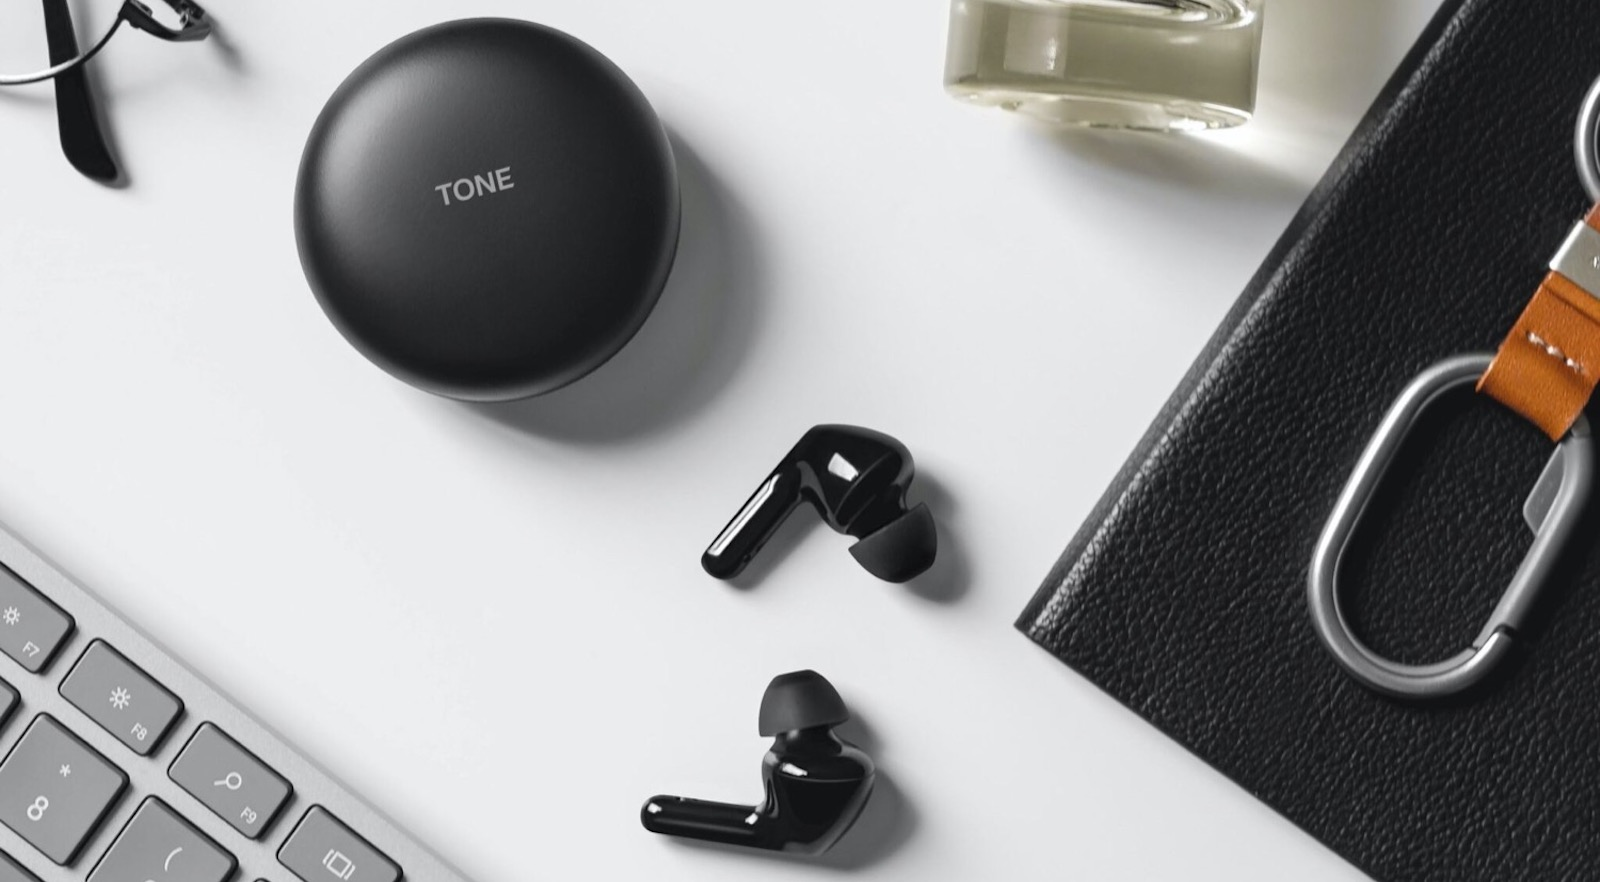 LG Tone Free FN7 wireless earbuds have active noise cancellation and a UV light case